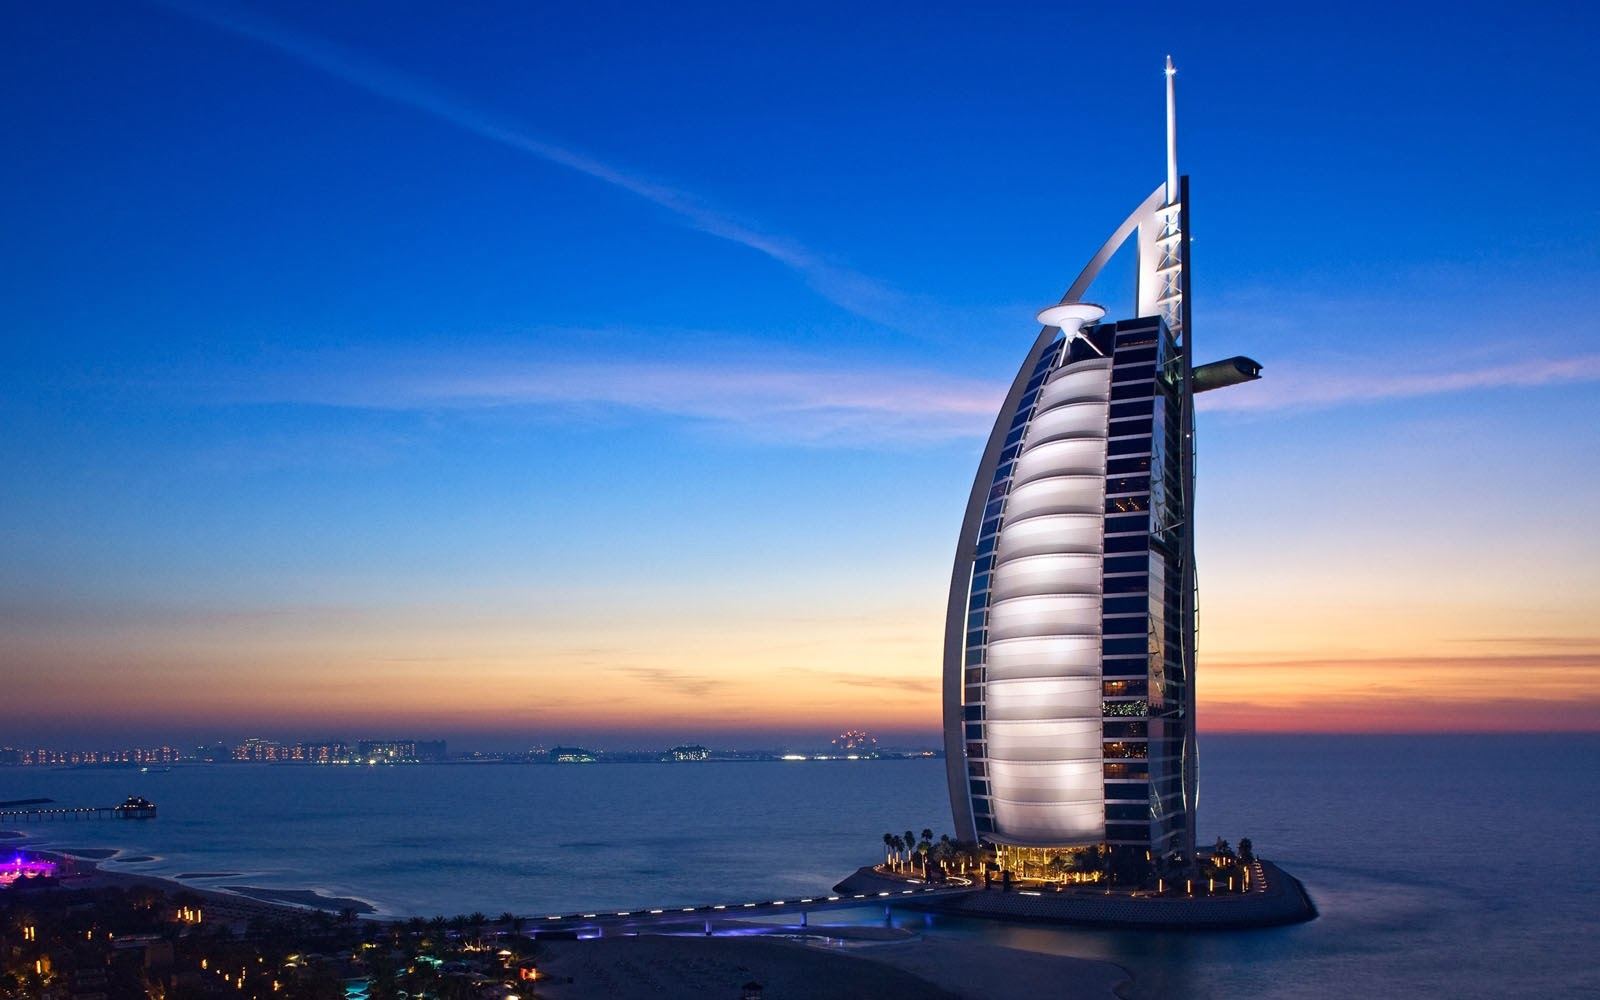 Wallpapers burj al arab hotel wallpapers for Dubai burj al arab